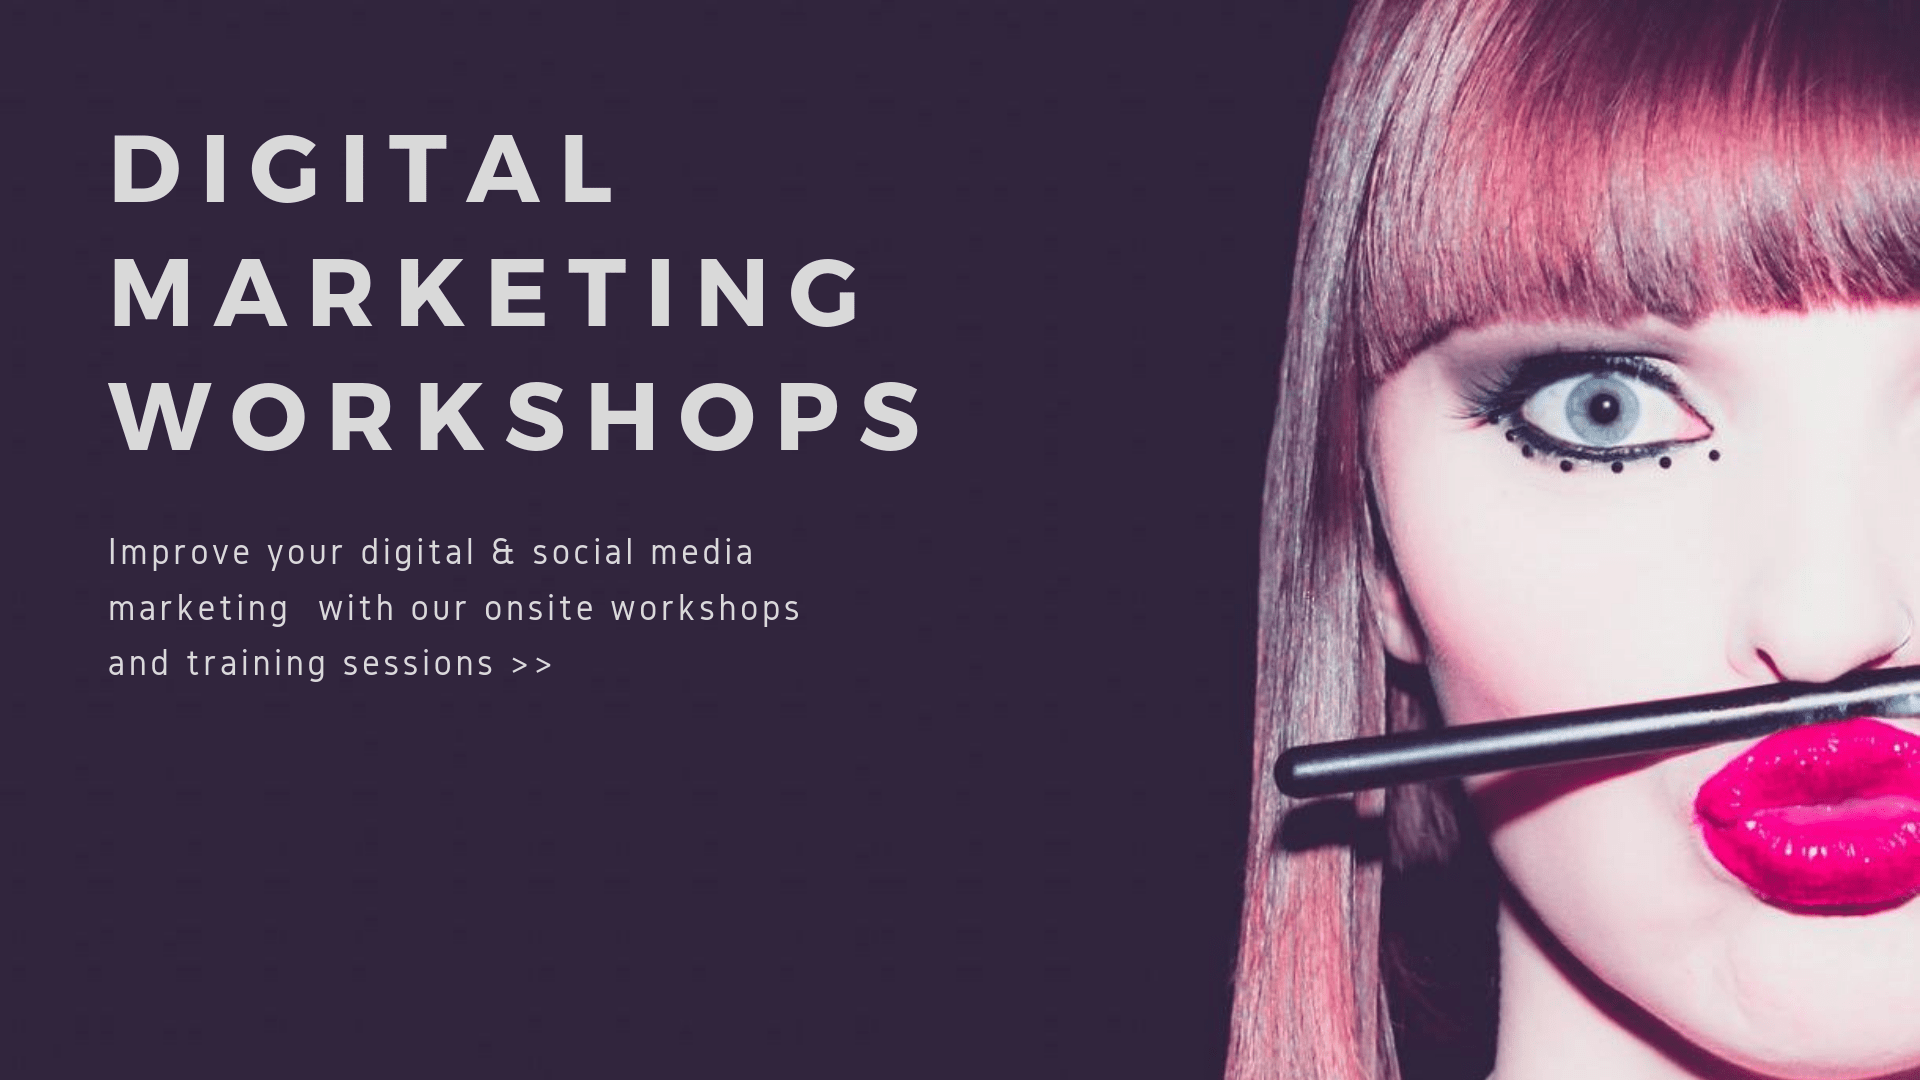 digital marketing workshops social media training sydney australia